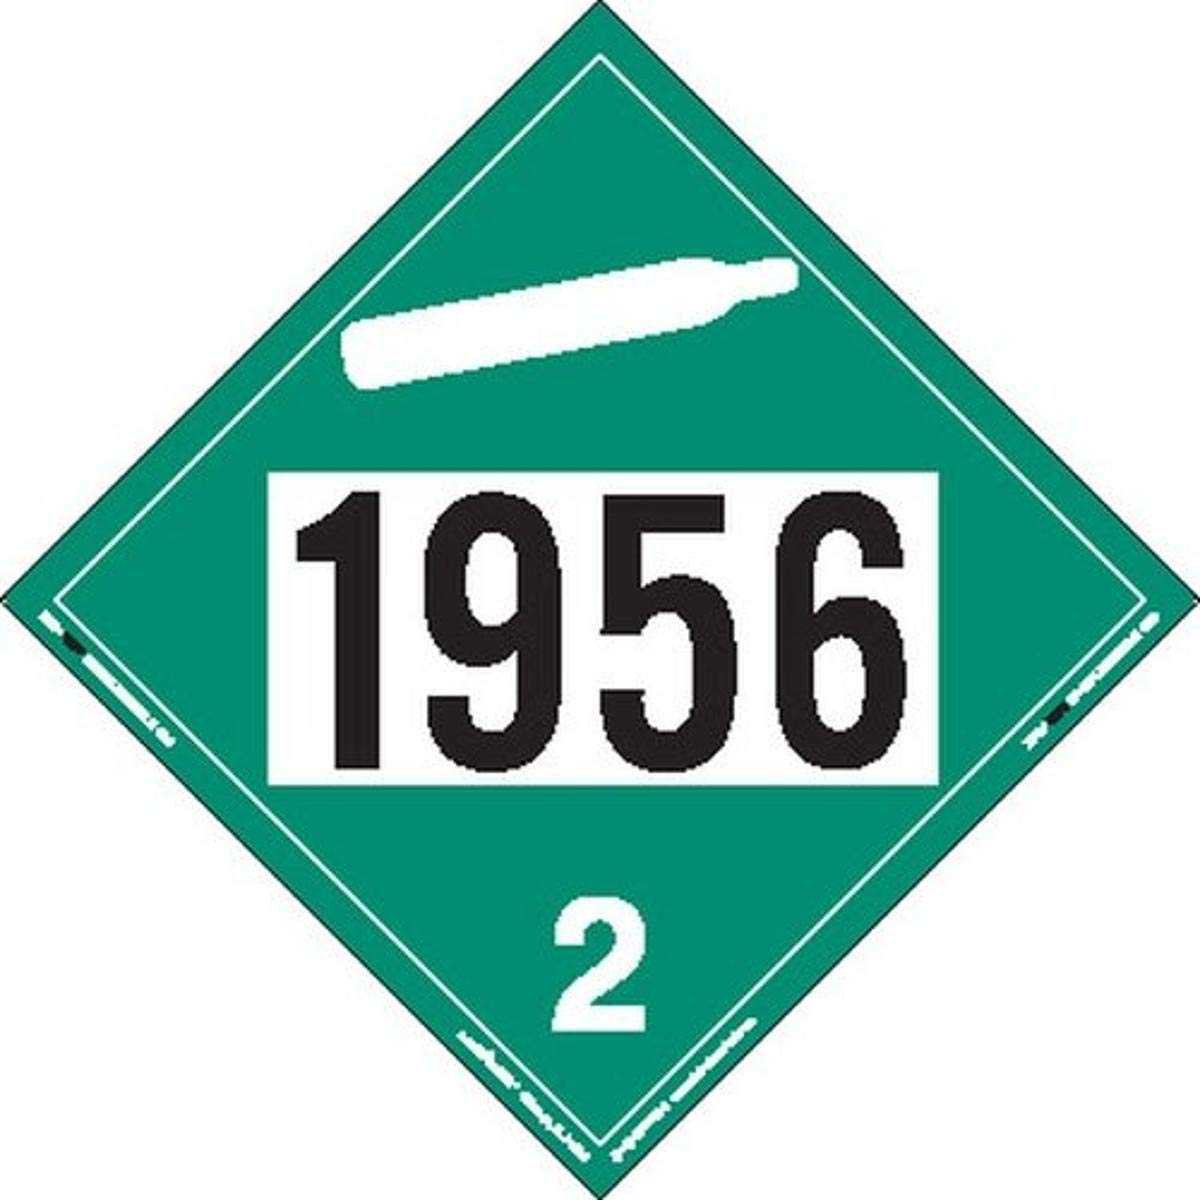 Labelmaster ZVR31956 UN 1956 Non-Flammable R Gas Discount mail order Hazmat Placard Ranking TOP11